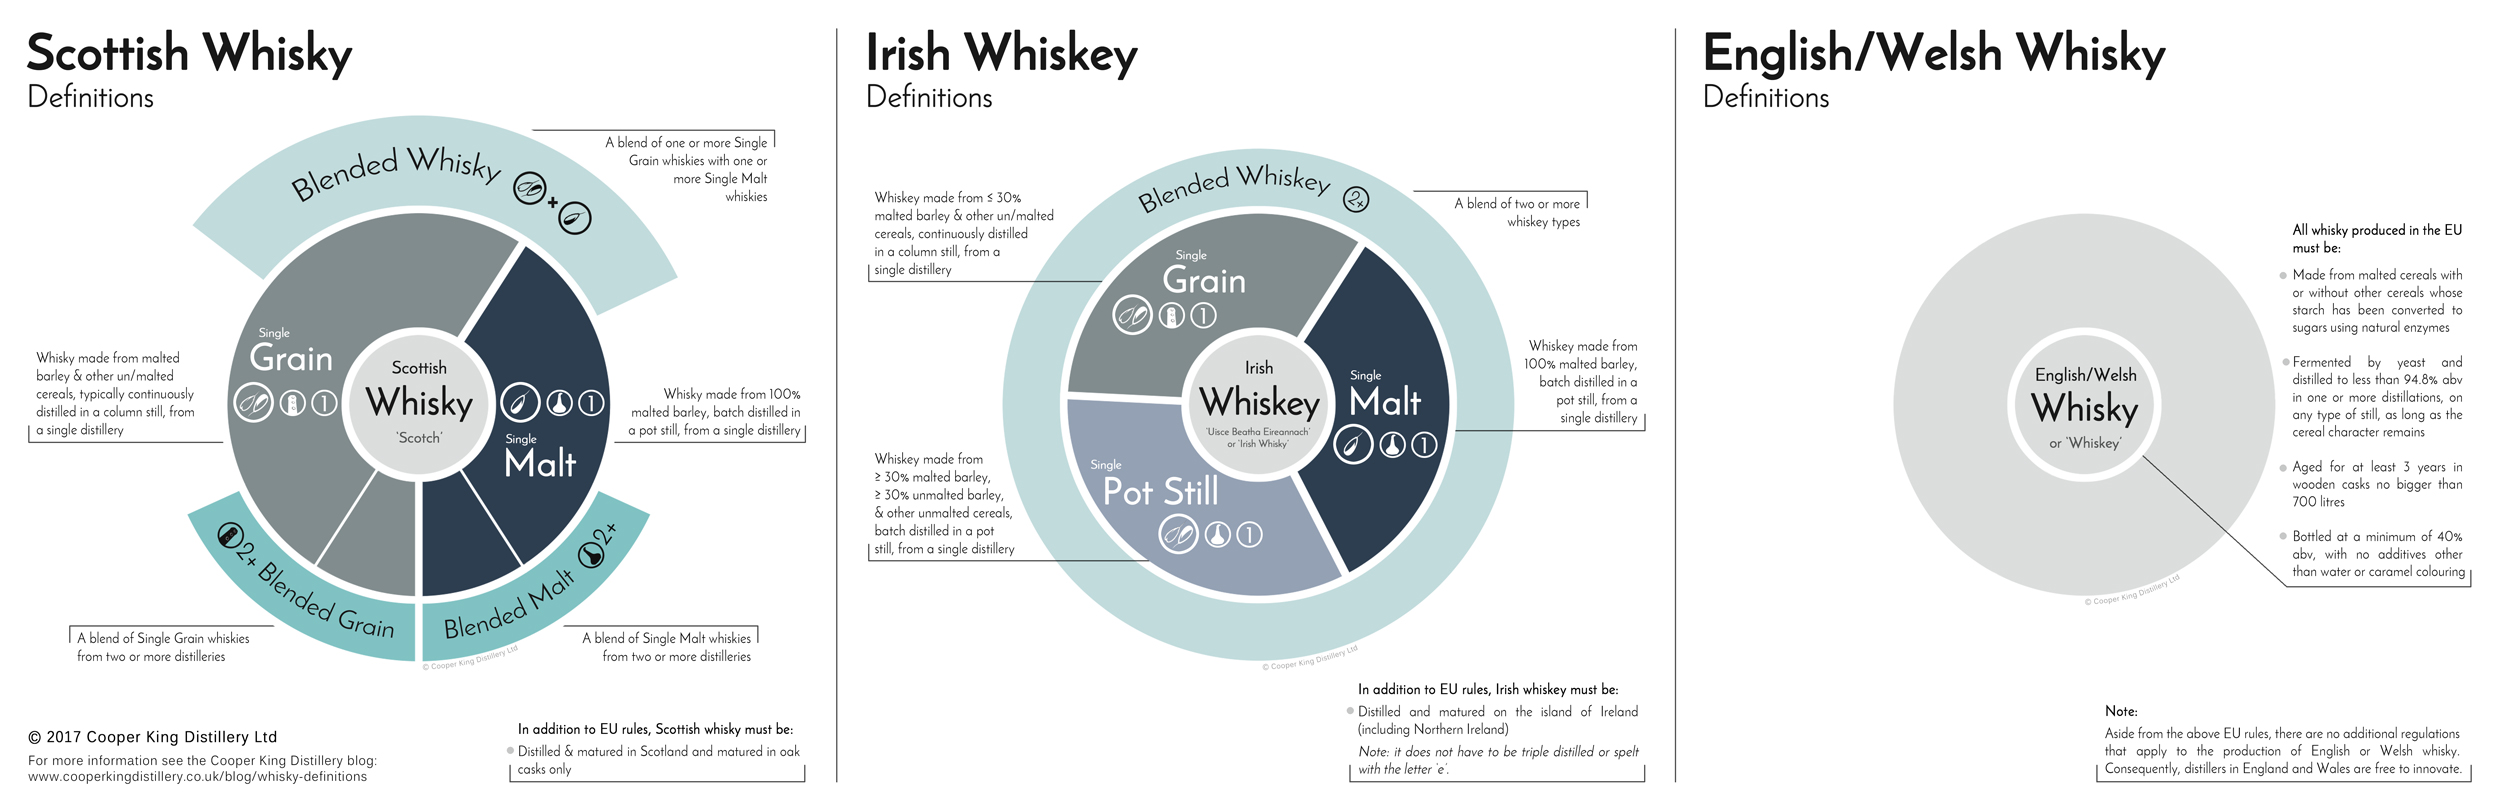 Click here for a full-sized image    of the complete whisky definitions trio